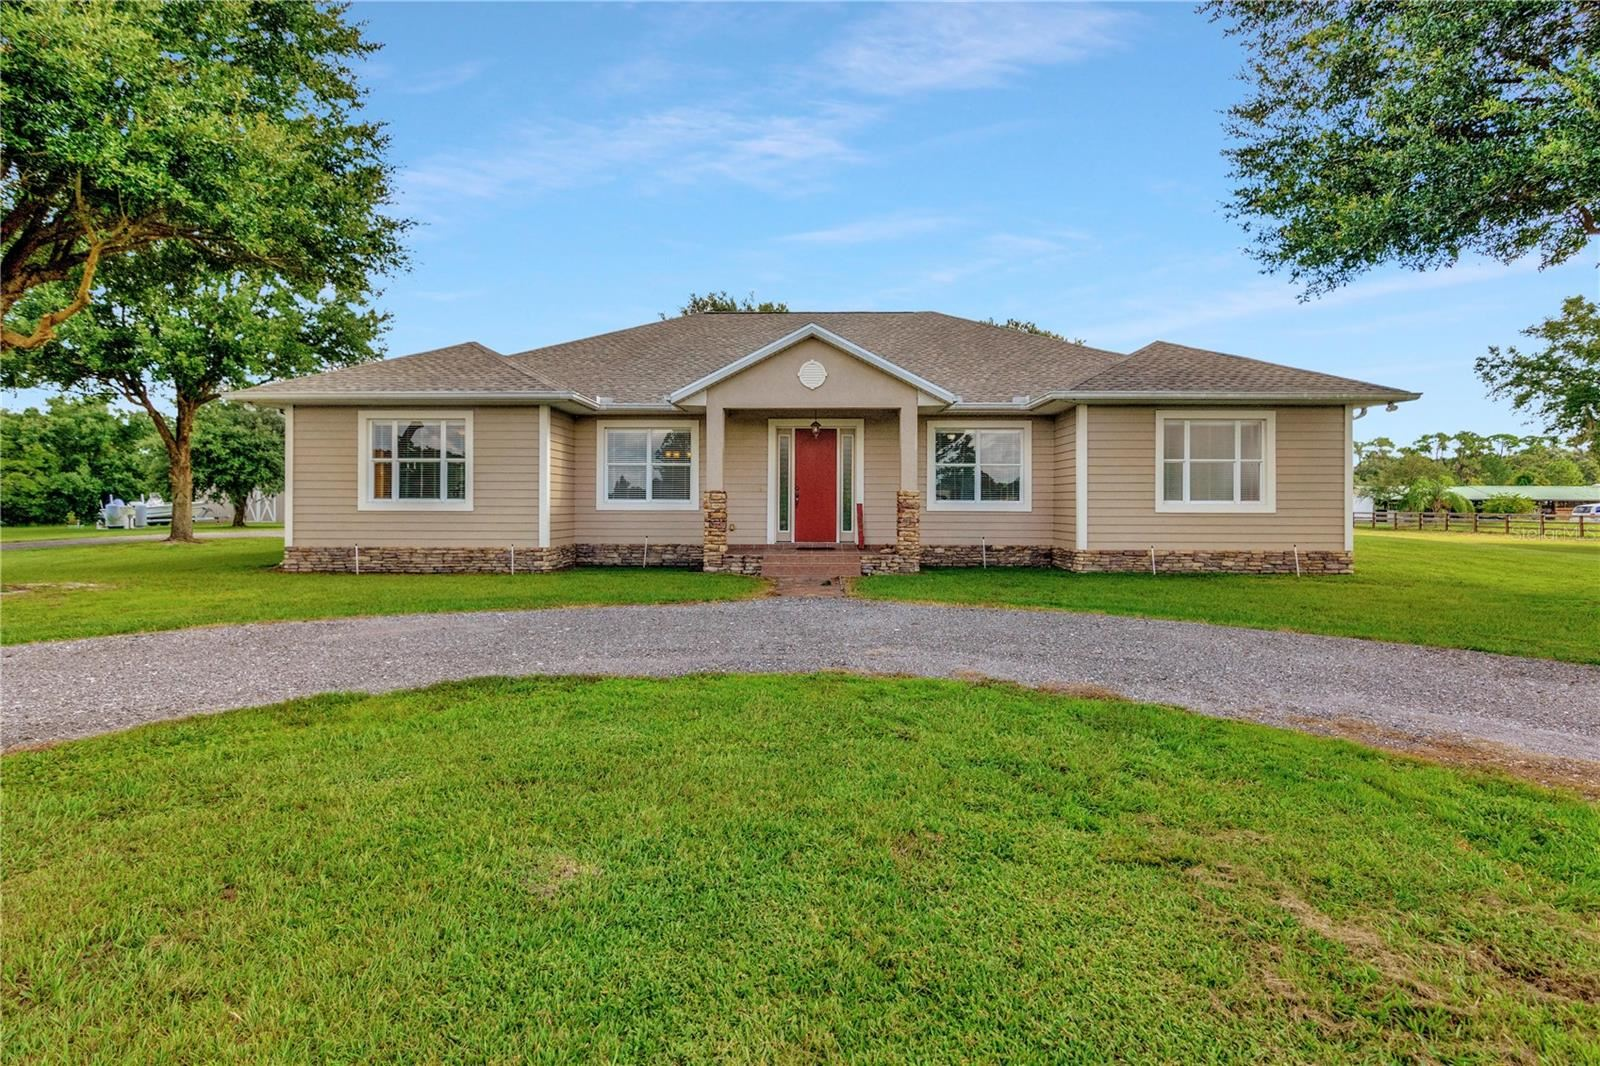 Photo of 14250 STATE RD 62, PARRISH, FL 34219 (MLS # A4507612)